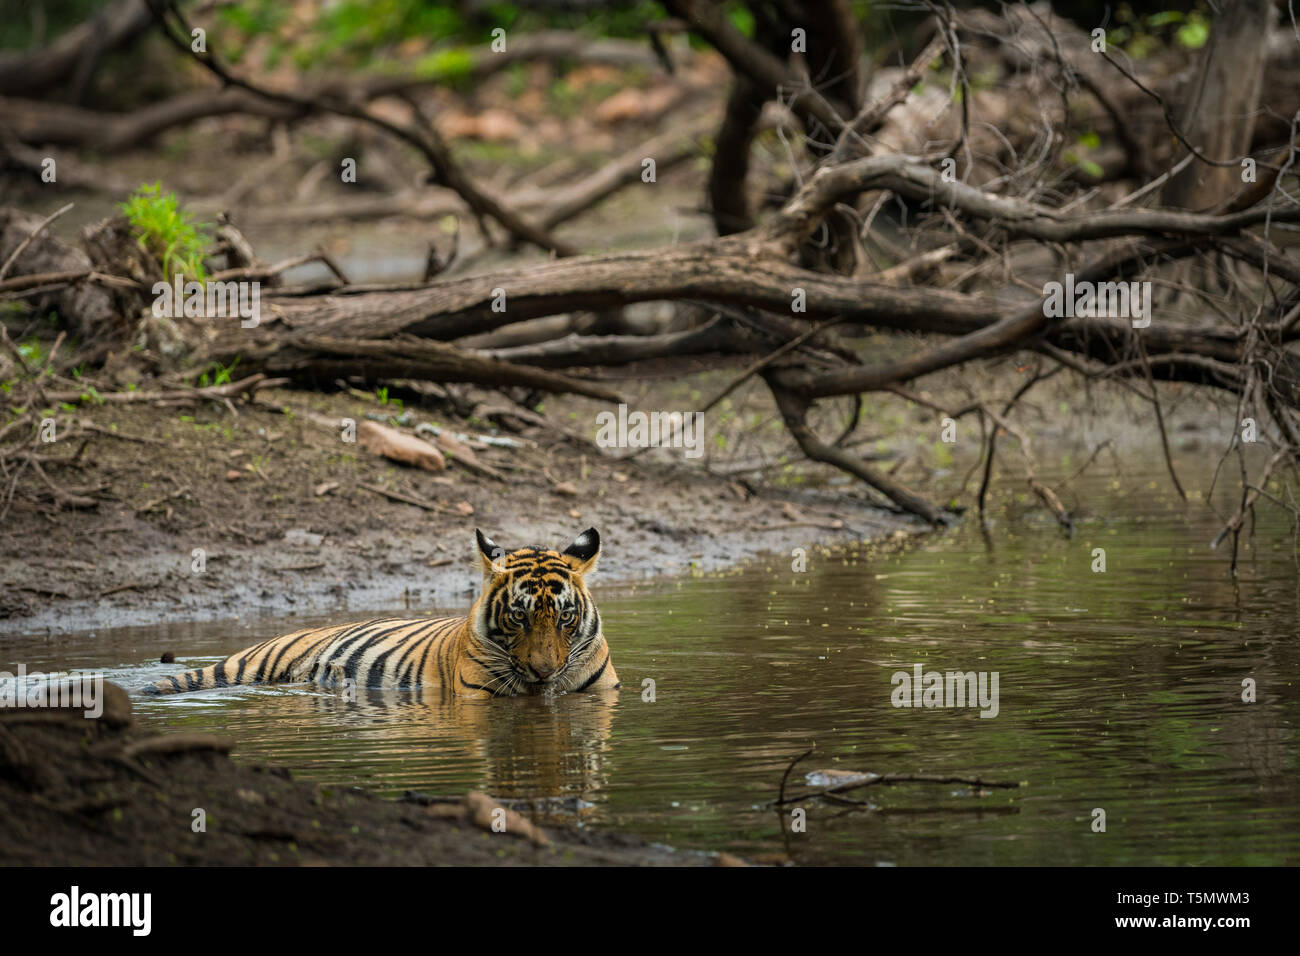 A bengal tiger (panthera tigris) closeup face quenching her thirst and cooling off in natural cold water in hot summers between rocks - Stock Image